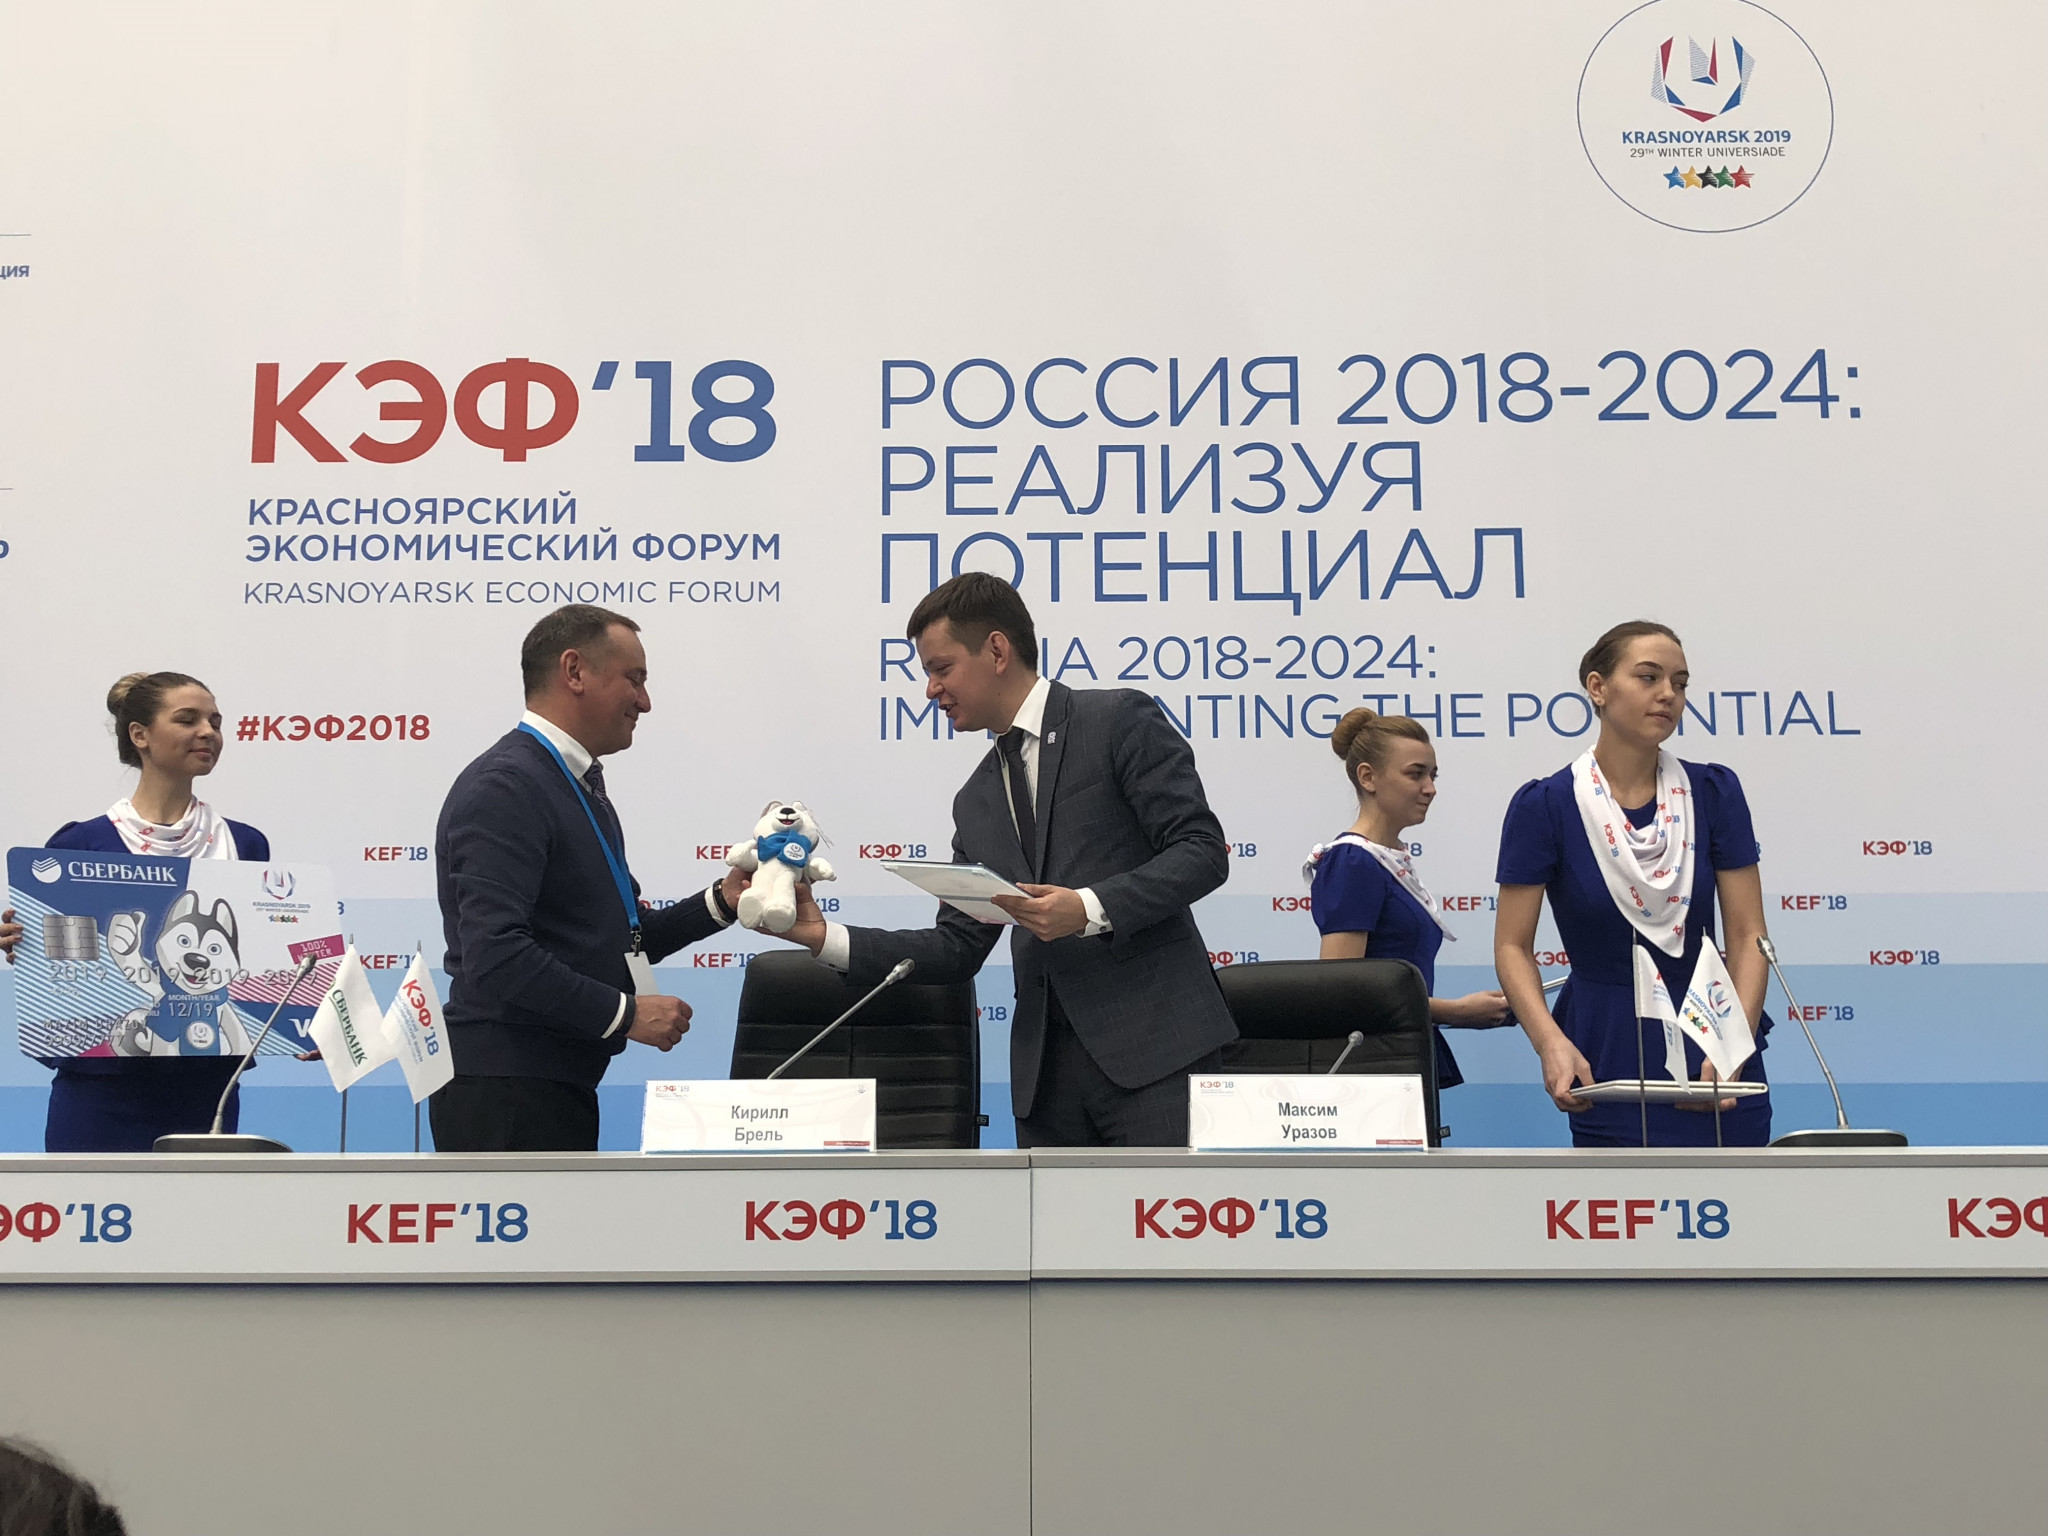 Sberbank will be the official banking partner of Krasnoyarsk 2019 ©Krasnoyarsk 2019